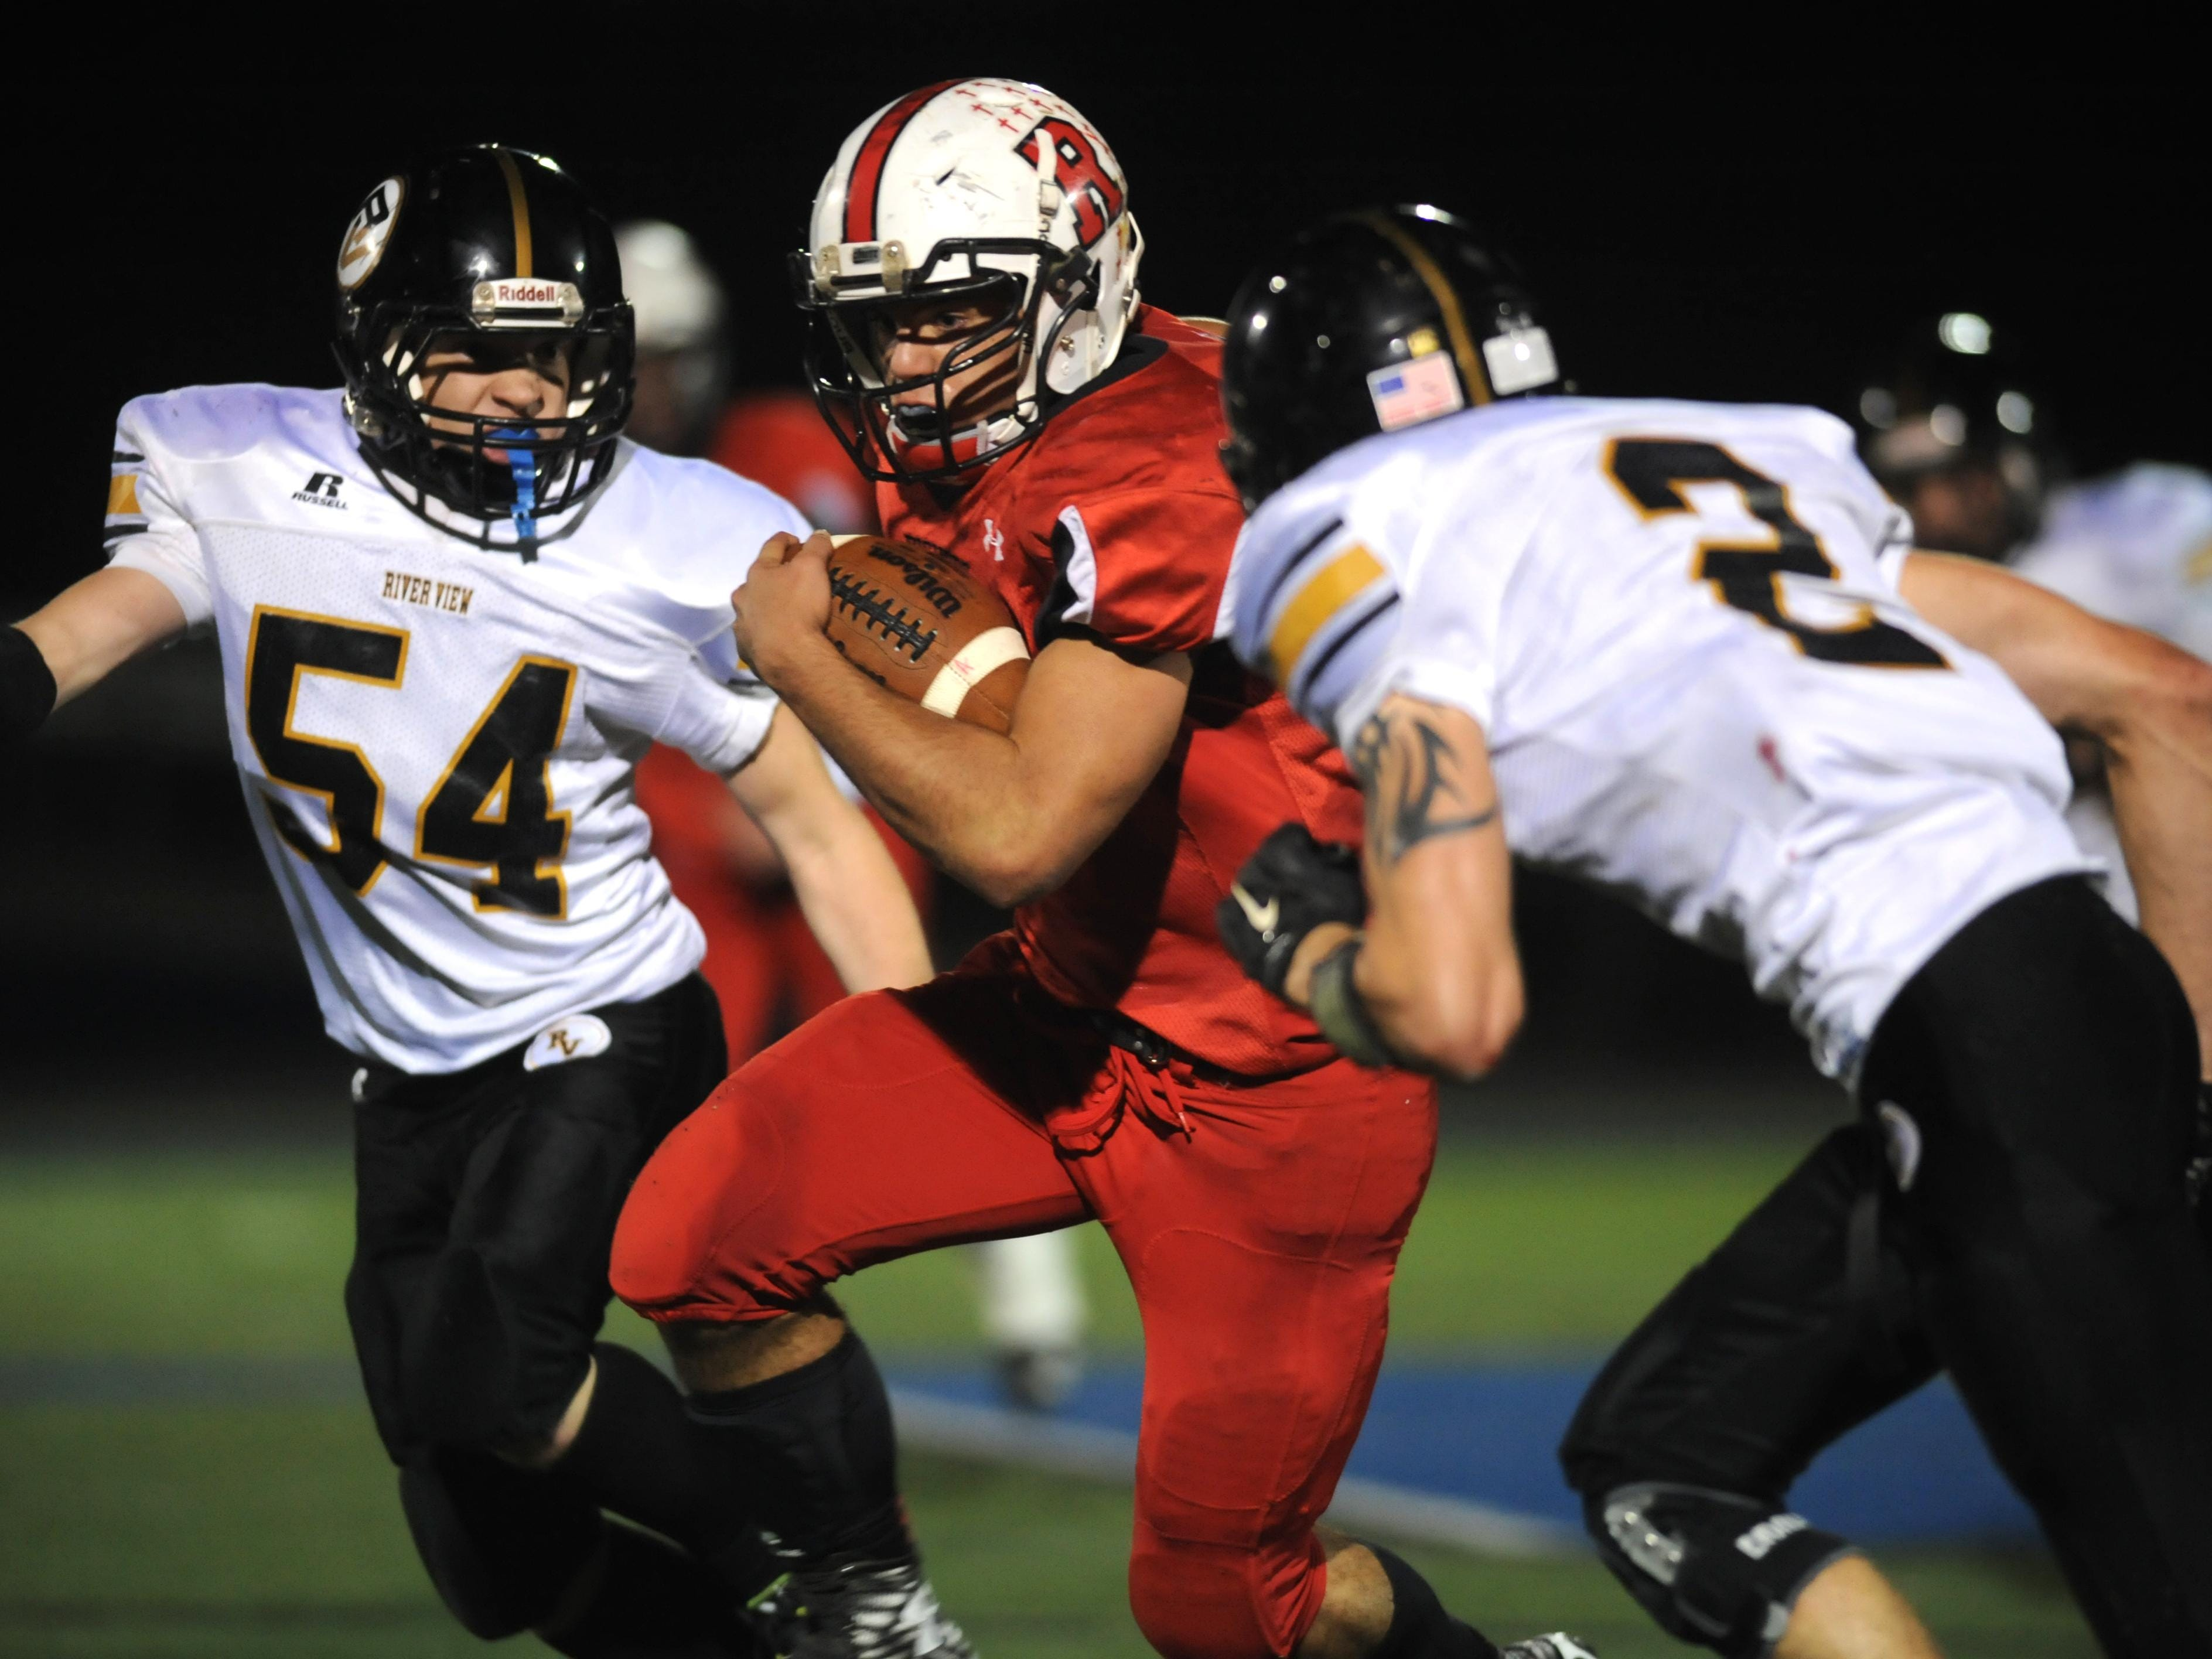 Rosecrans' Travis Johnston splits a pair of River View defenders Friday night at Zanesville High School. The Bishops beat the Black Bears 28-0.